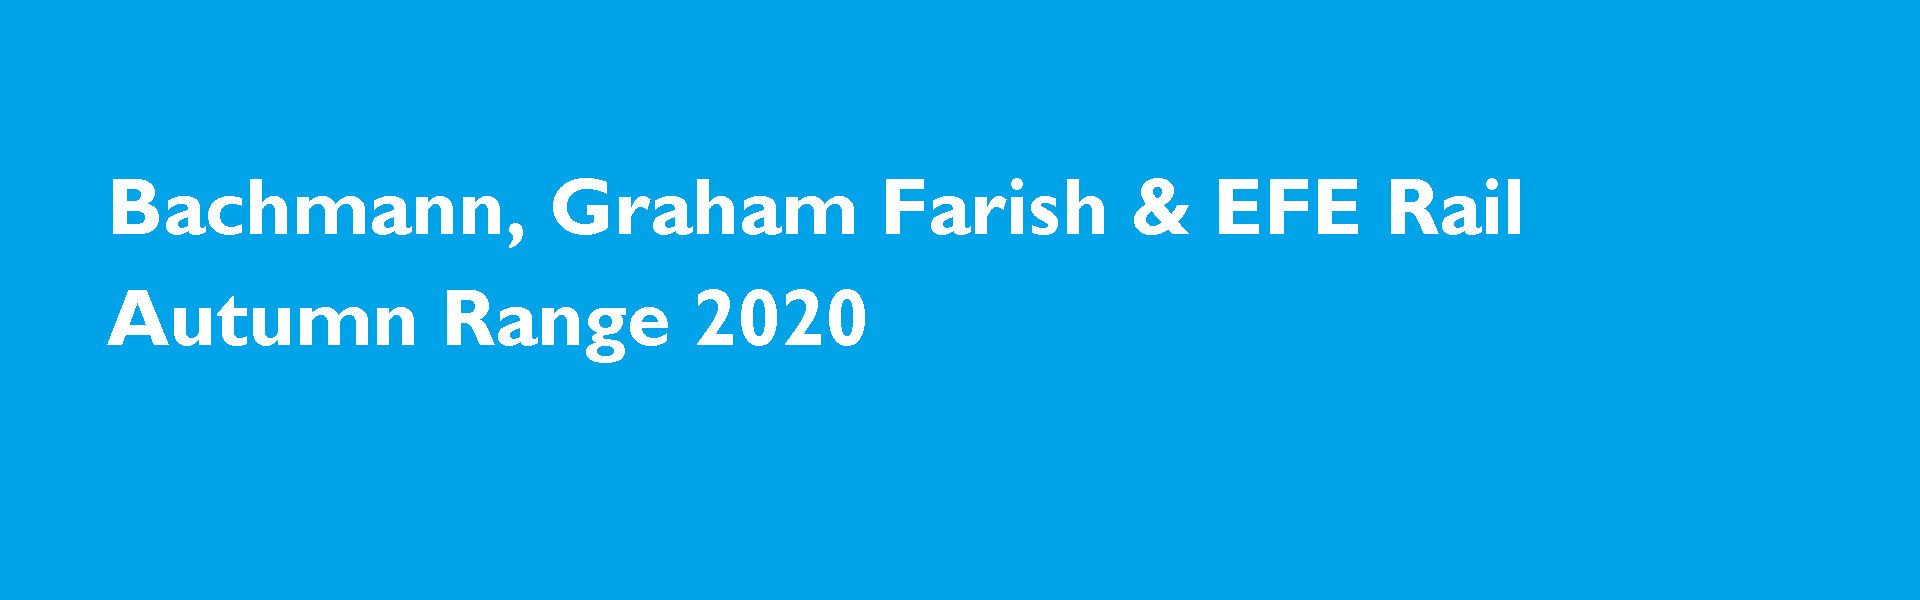 Bachmann, Graham Farish and EFE Rail Autumn 2020 - New Range Now Live